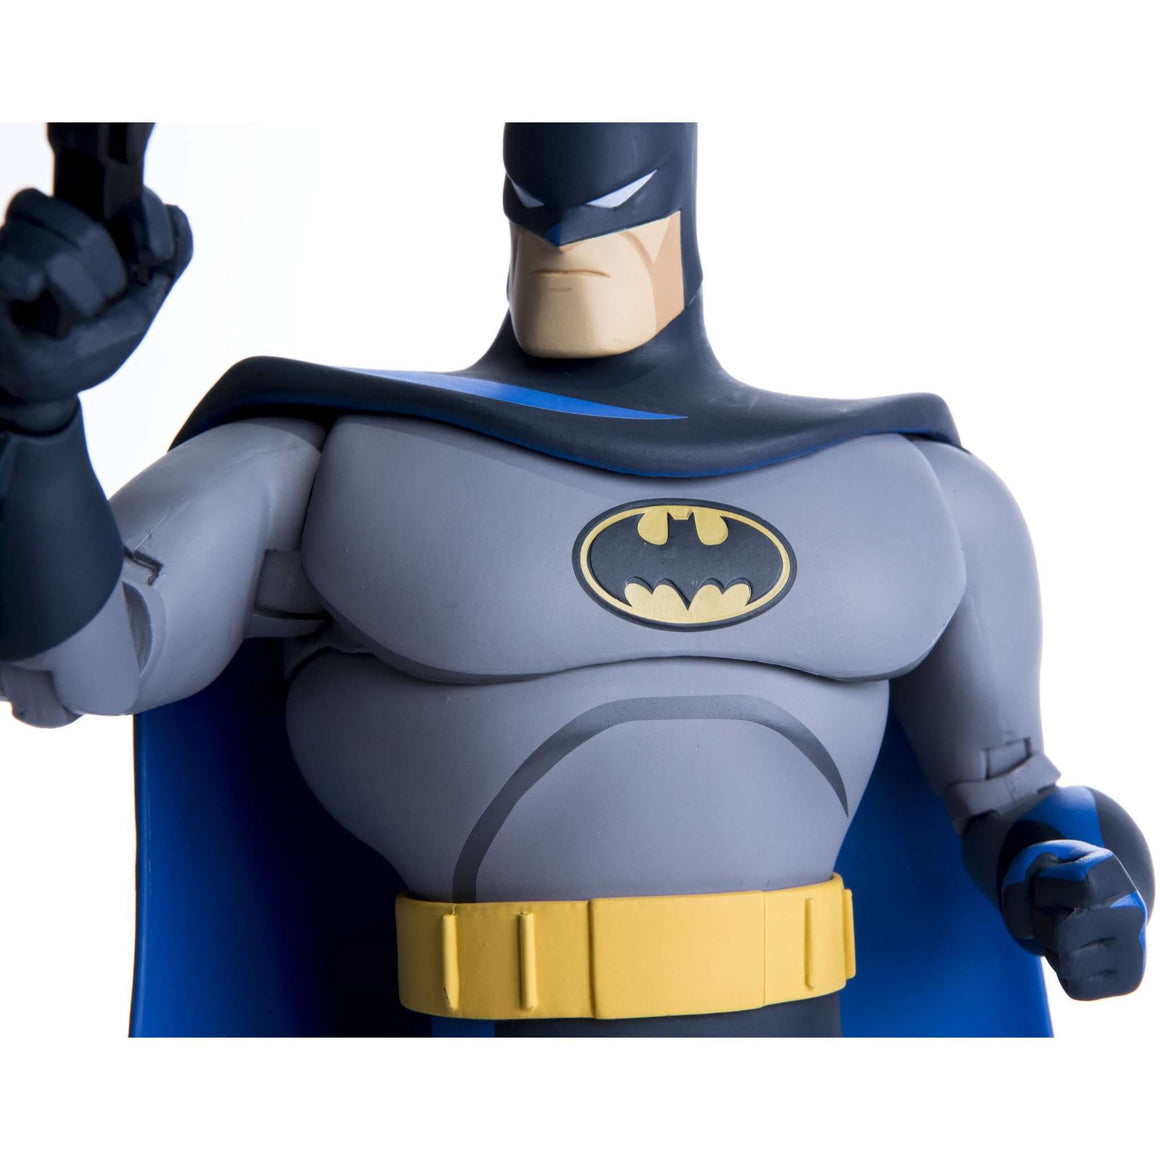 Batman: The Animated Series 1/6 Scale Figure - Q4 2018